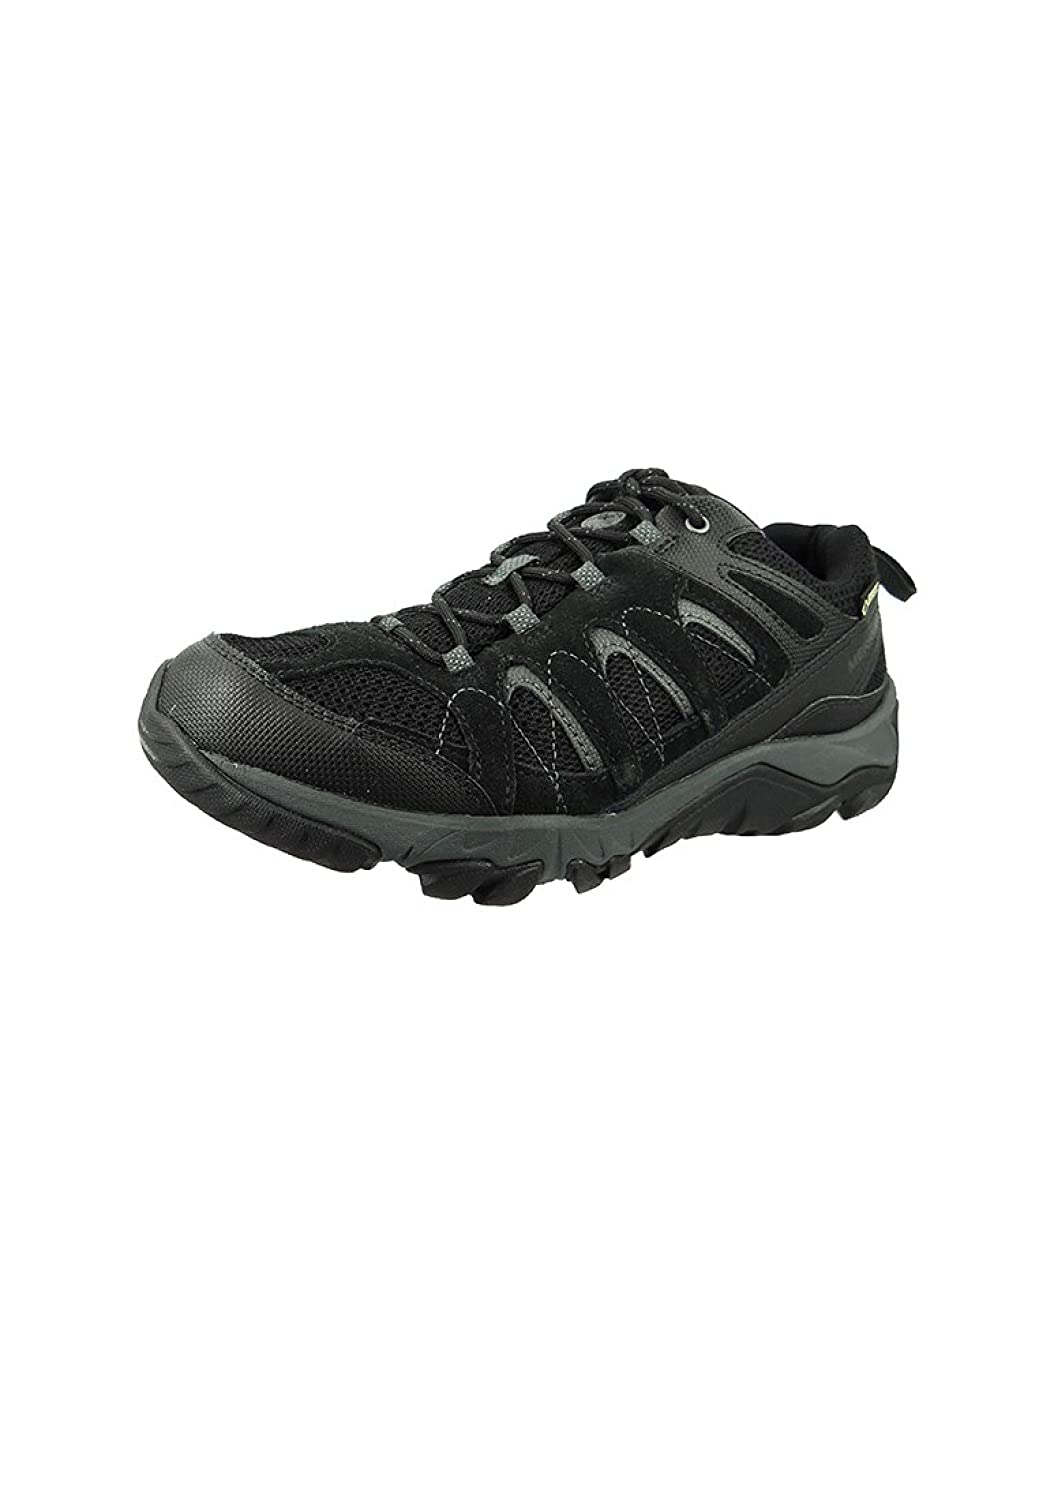 Merrell Mens Shoe Outmost Vent GTX Black